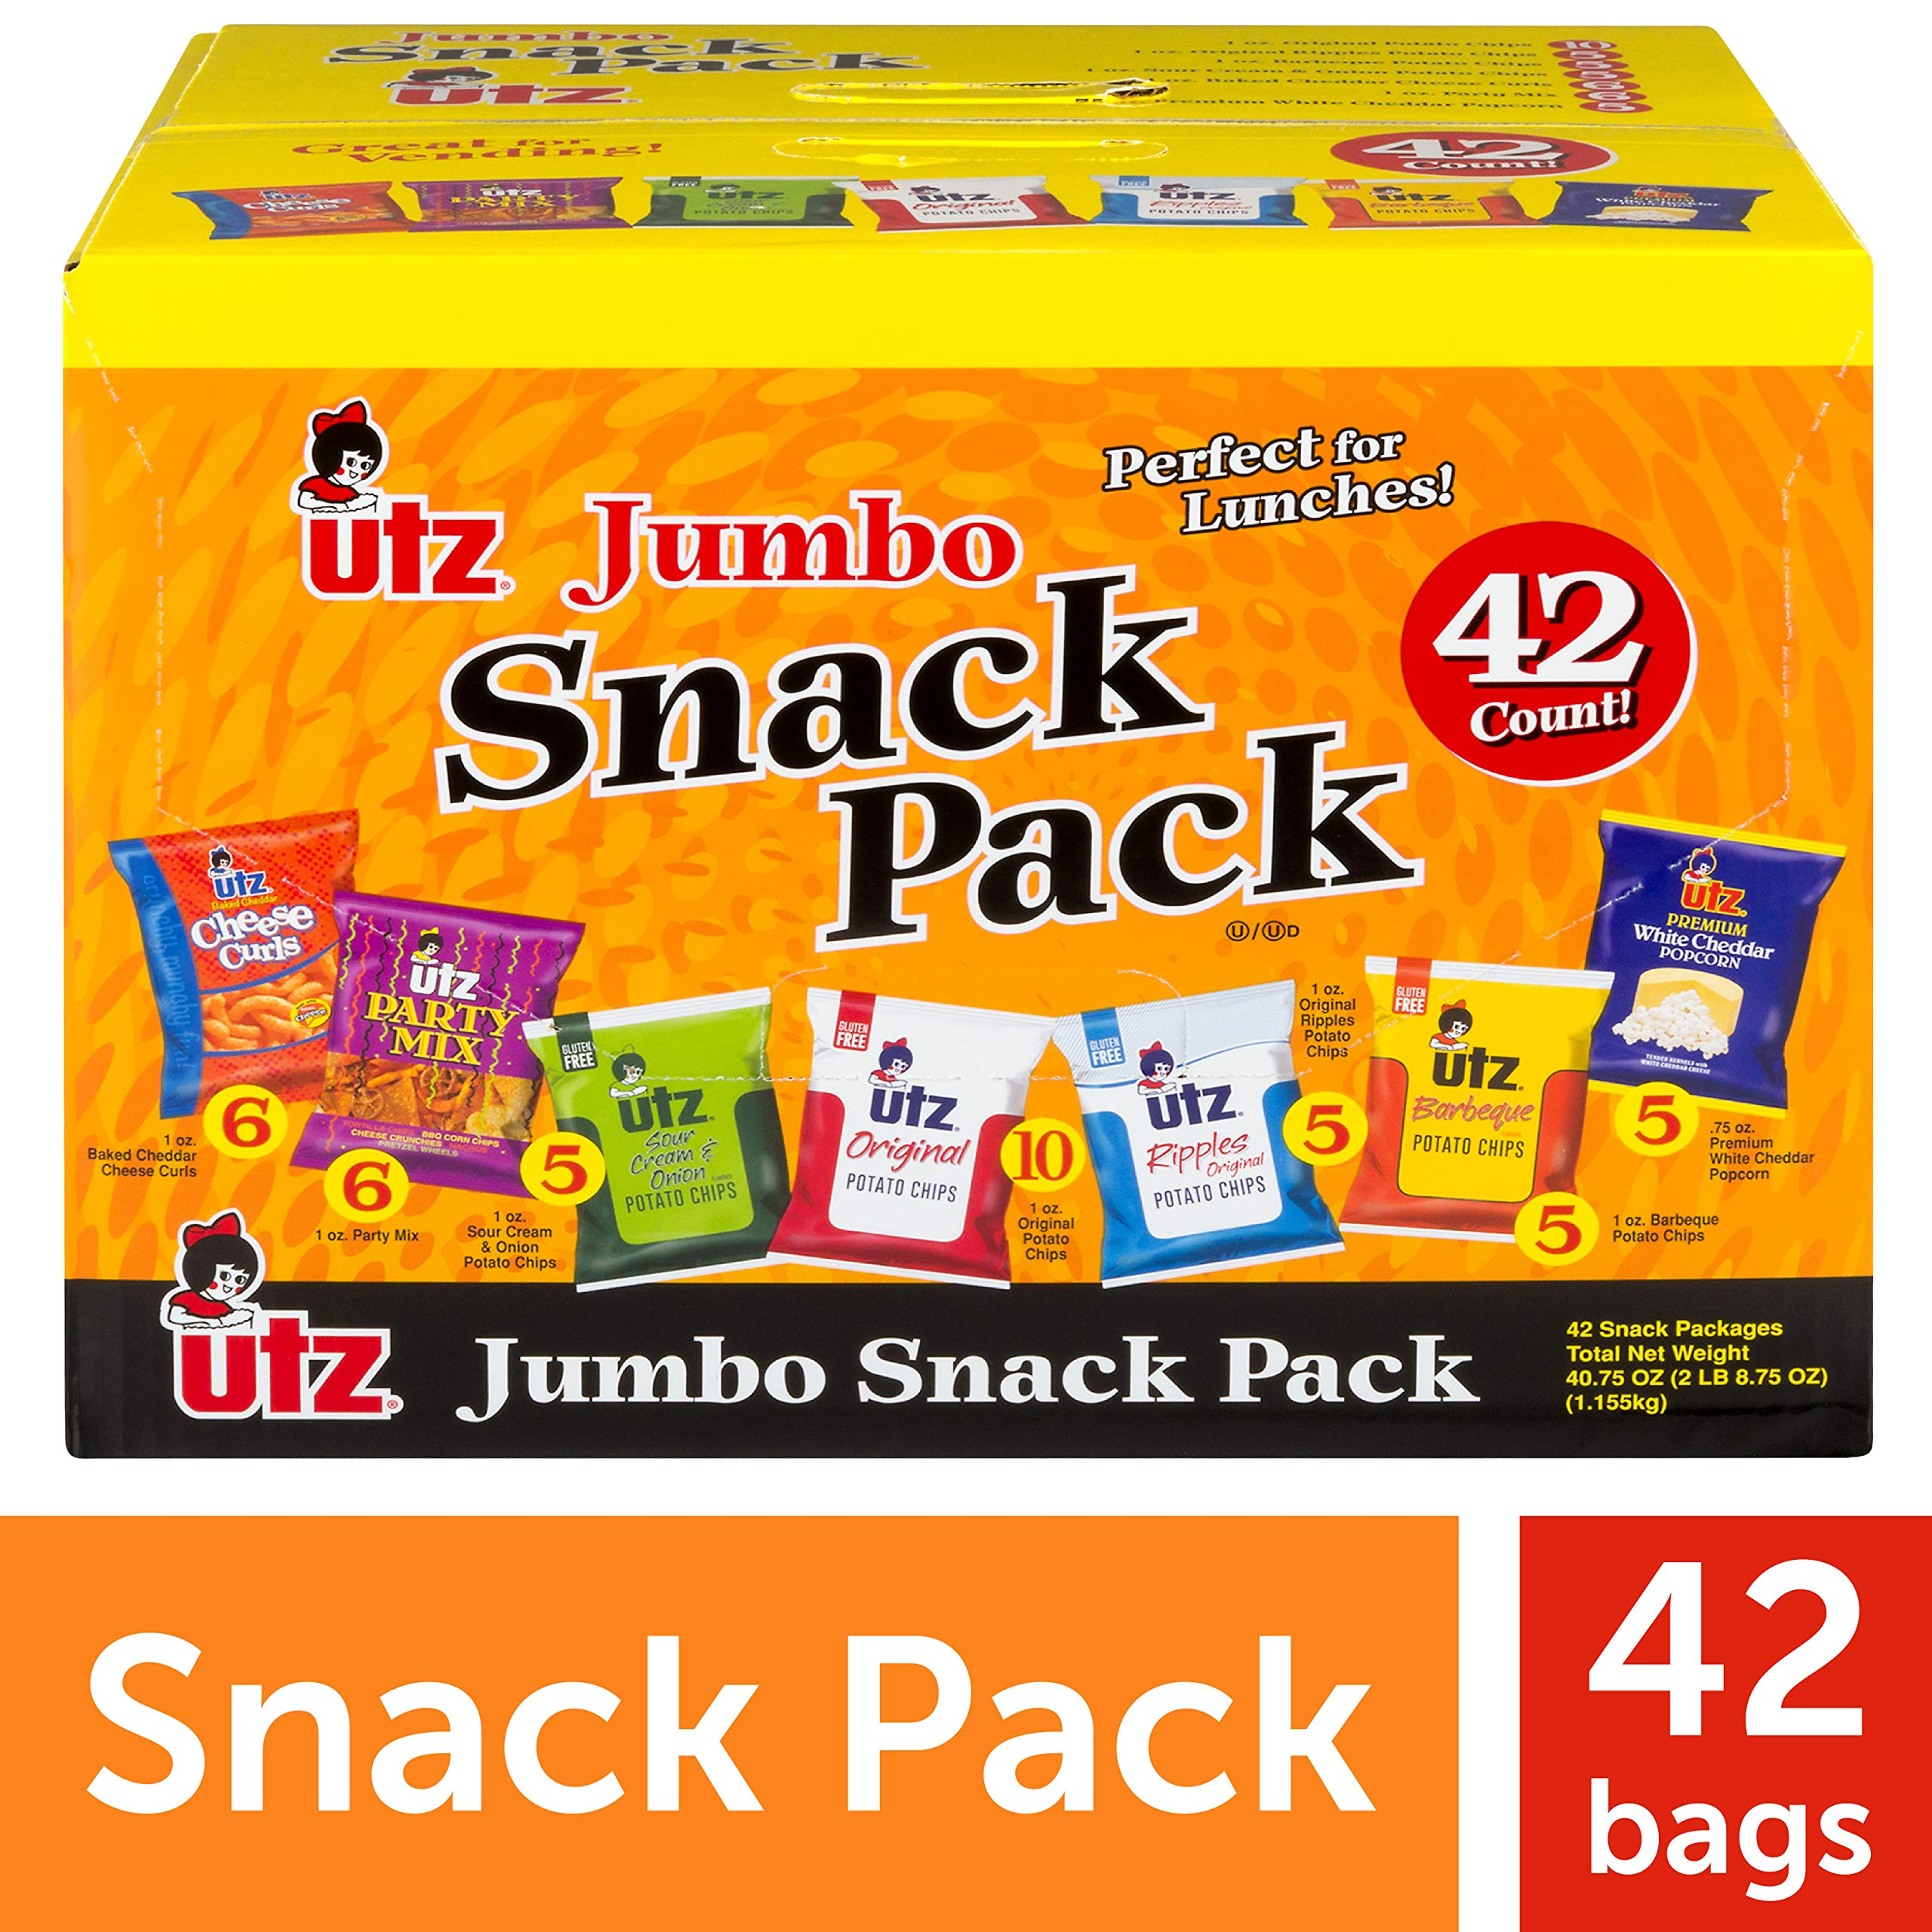 Utz Jumbo Snack Pack, 43.25 Ounce by UTZ